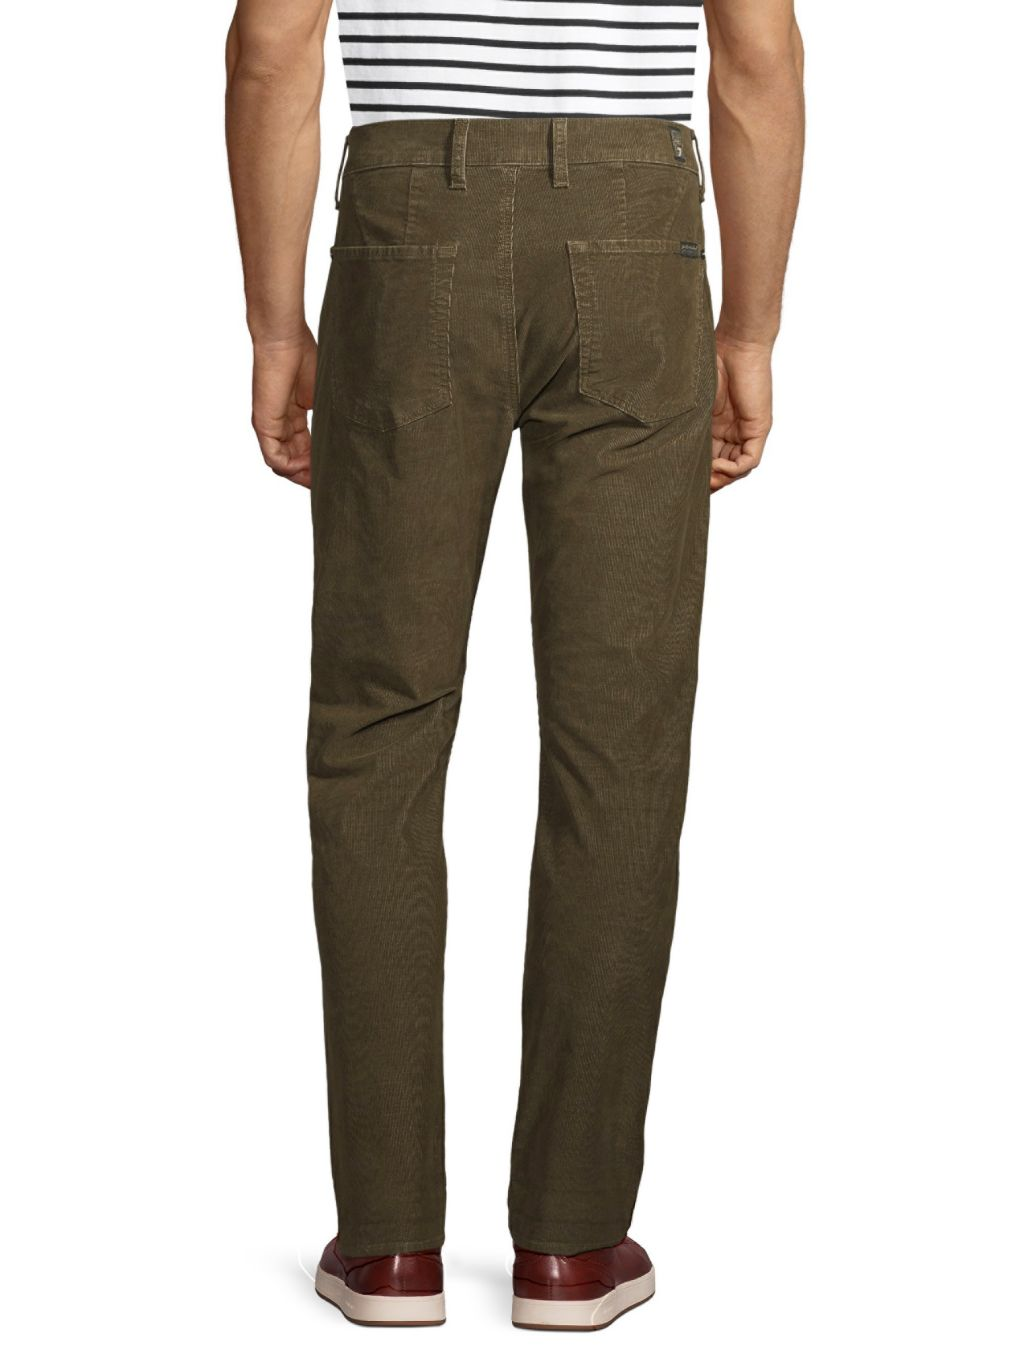 7 For All Mankind Corduroy Chino Pants